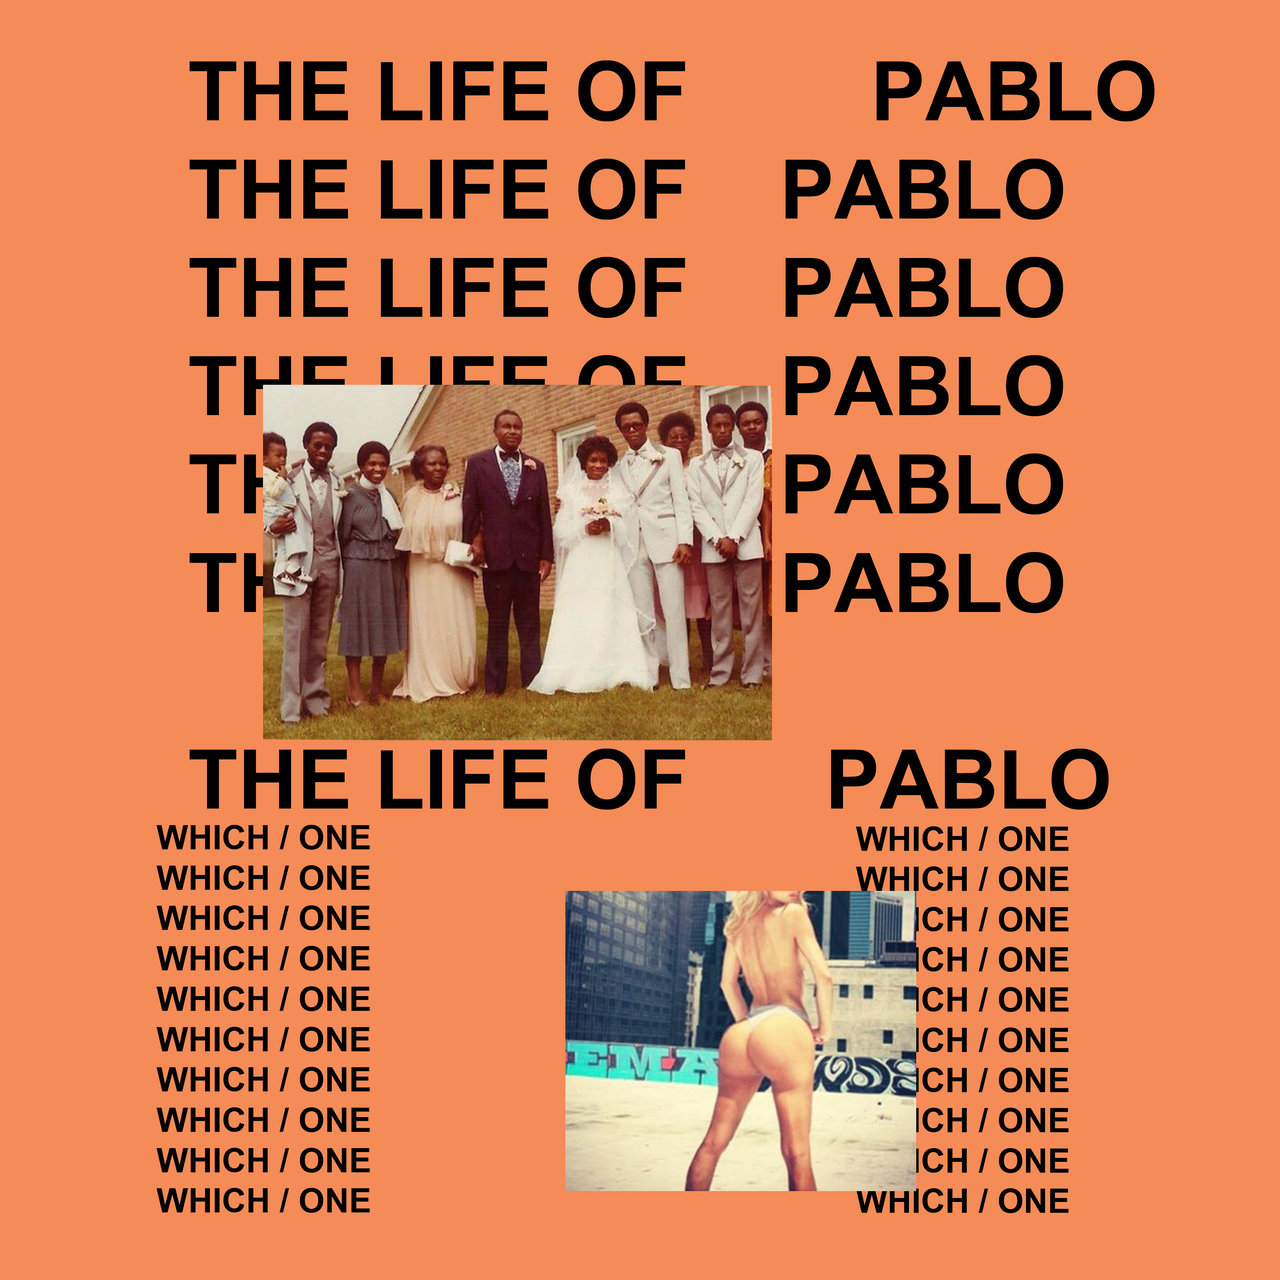 kanye-west-the-life-of-pablo-alternate-2016-1280x1280